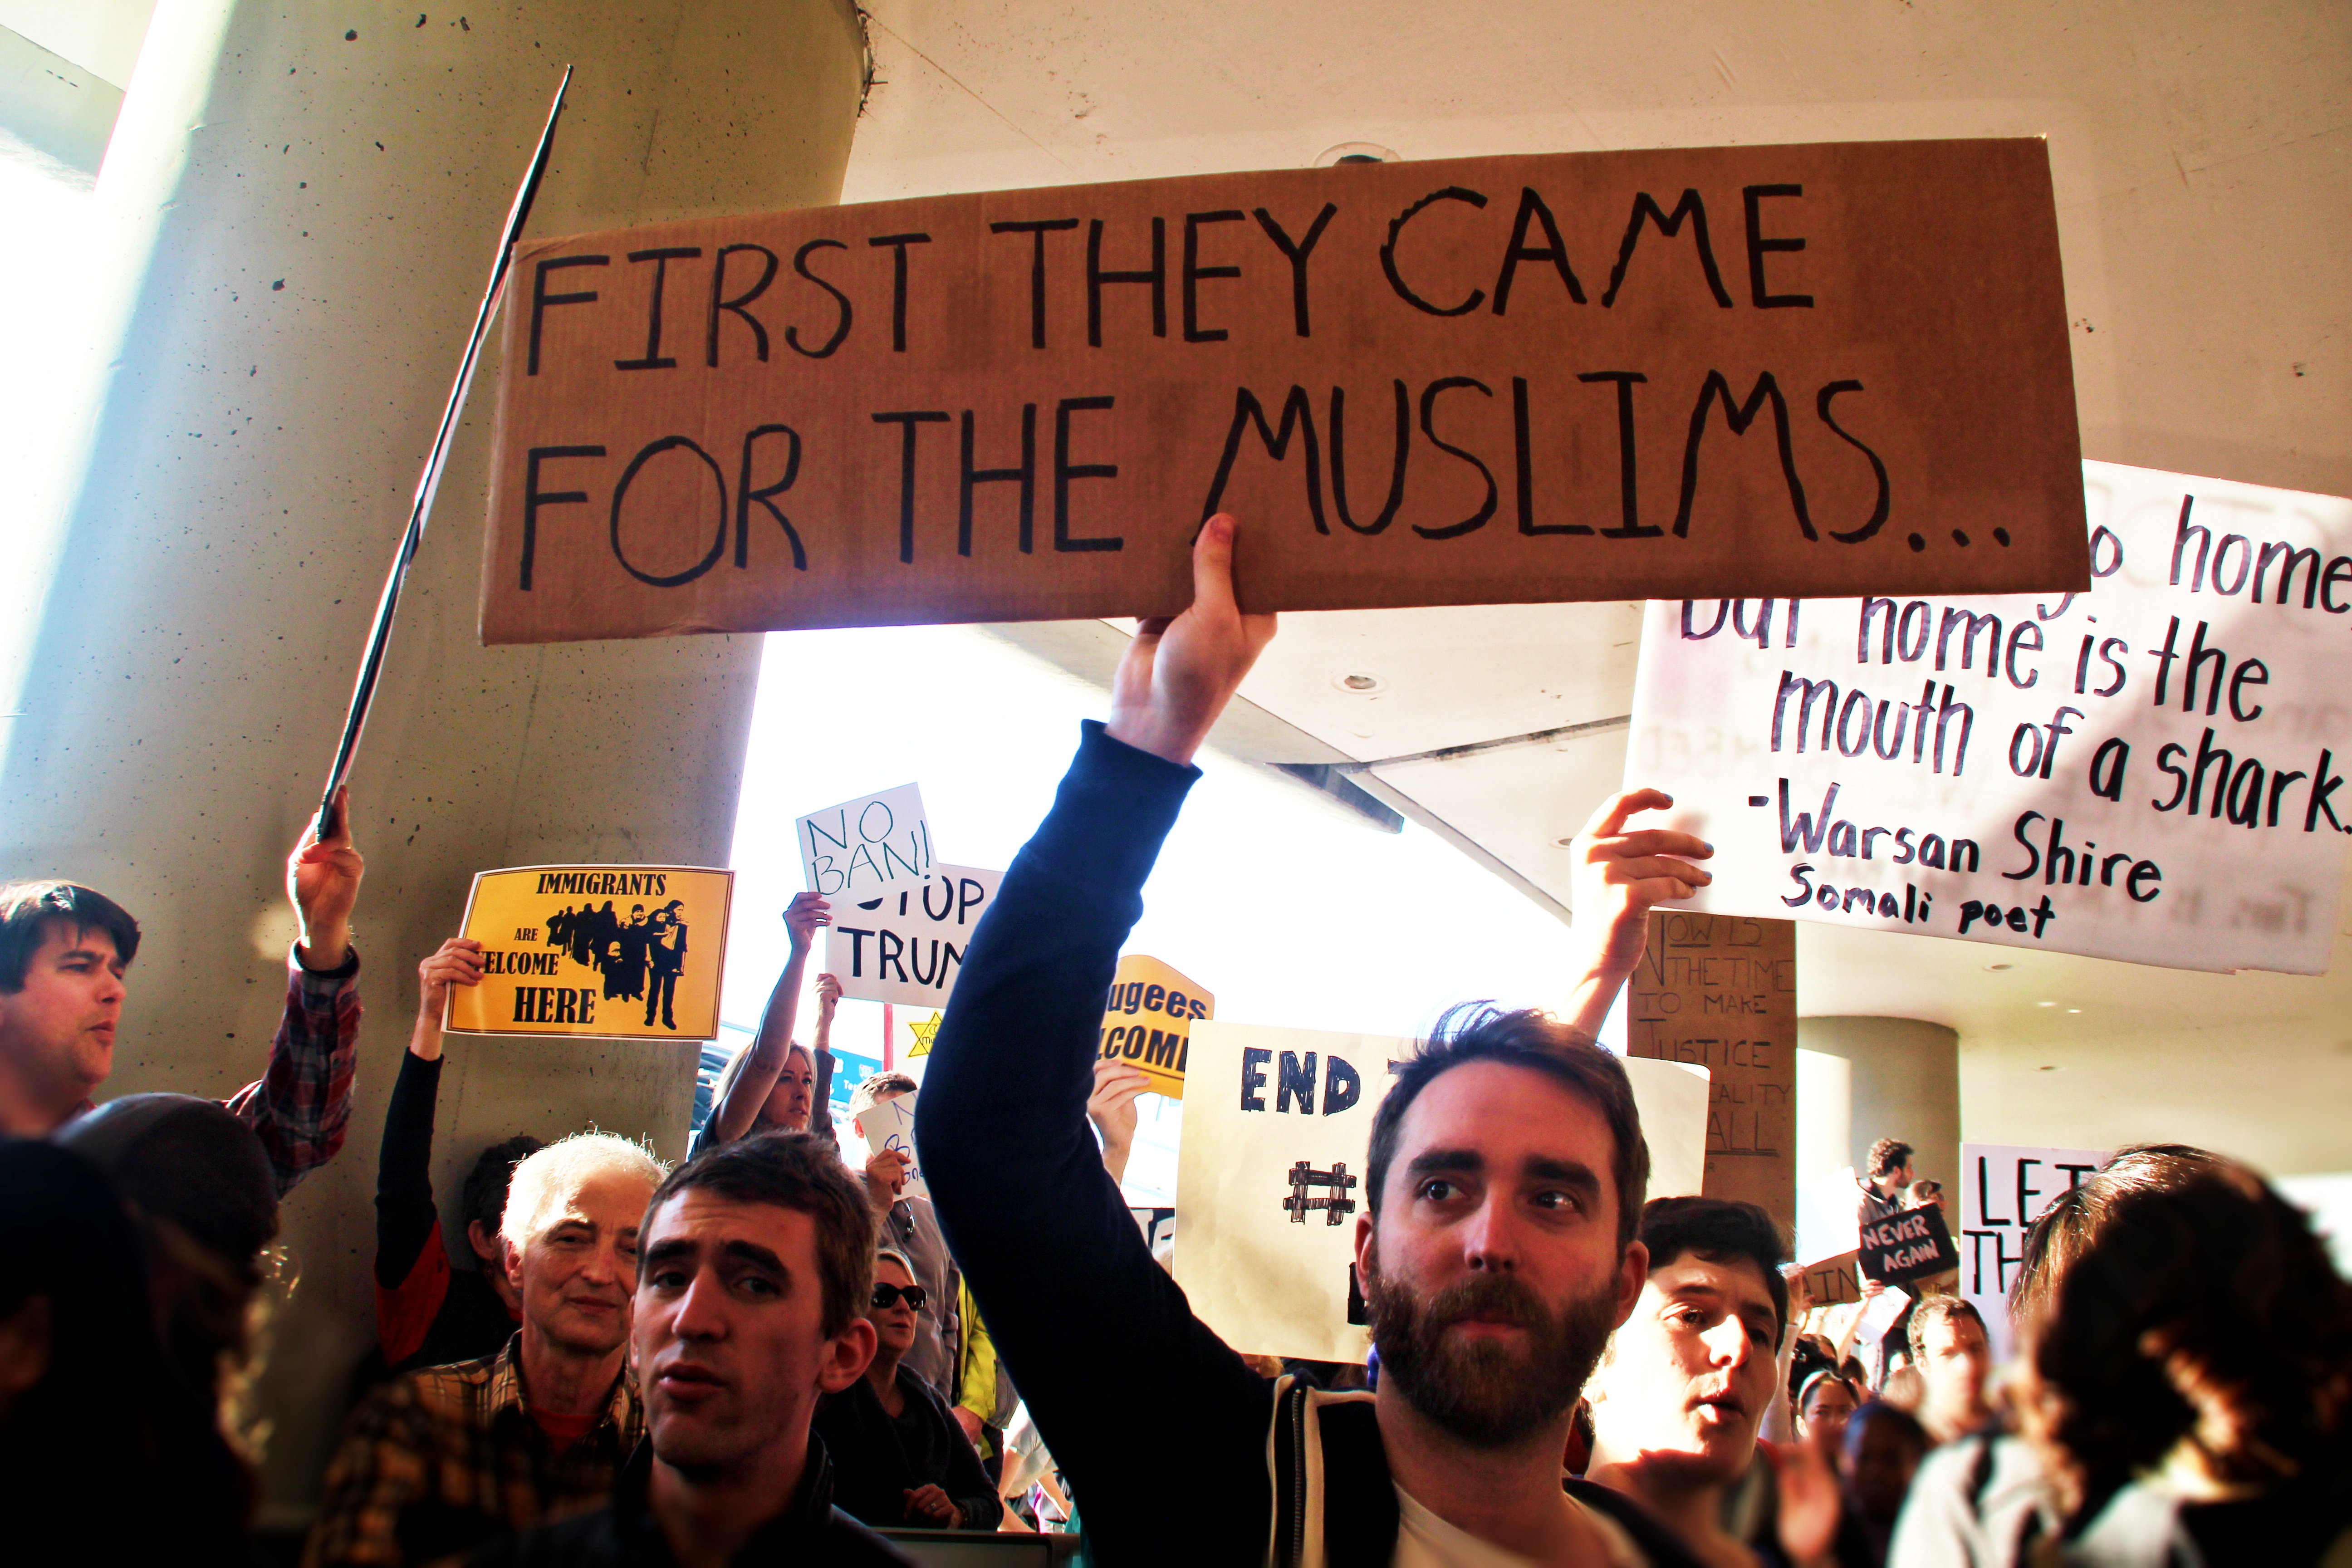 Protestors stand outside International Arrives at San Francisco International Airport to protest President Trump's Executive Order on immigration, barring individuals with legal visas from entering the United States, on Saturday 28th of January 2017.  Photo by Sana Saleem.